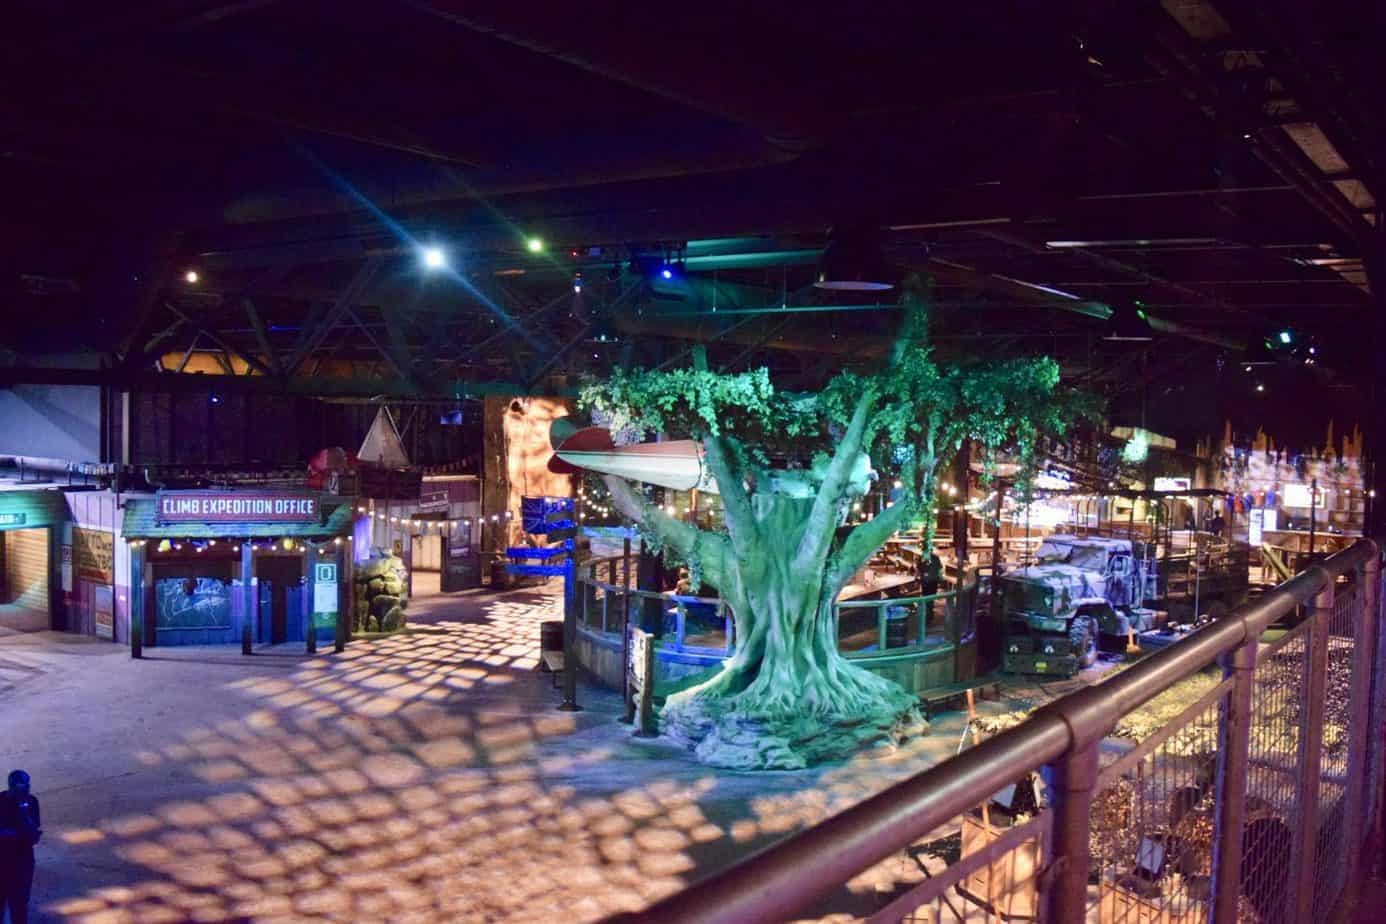 The main lobby at Bear grylls adventure